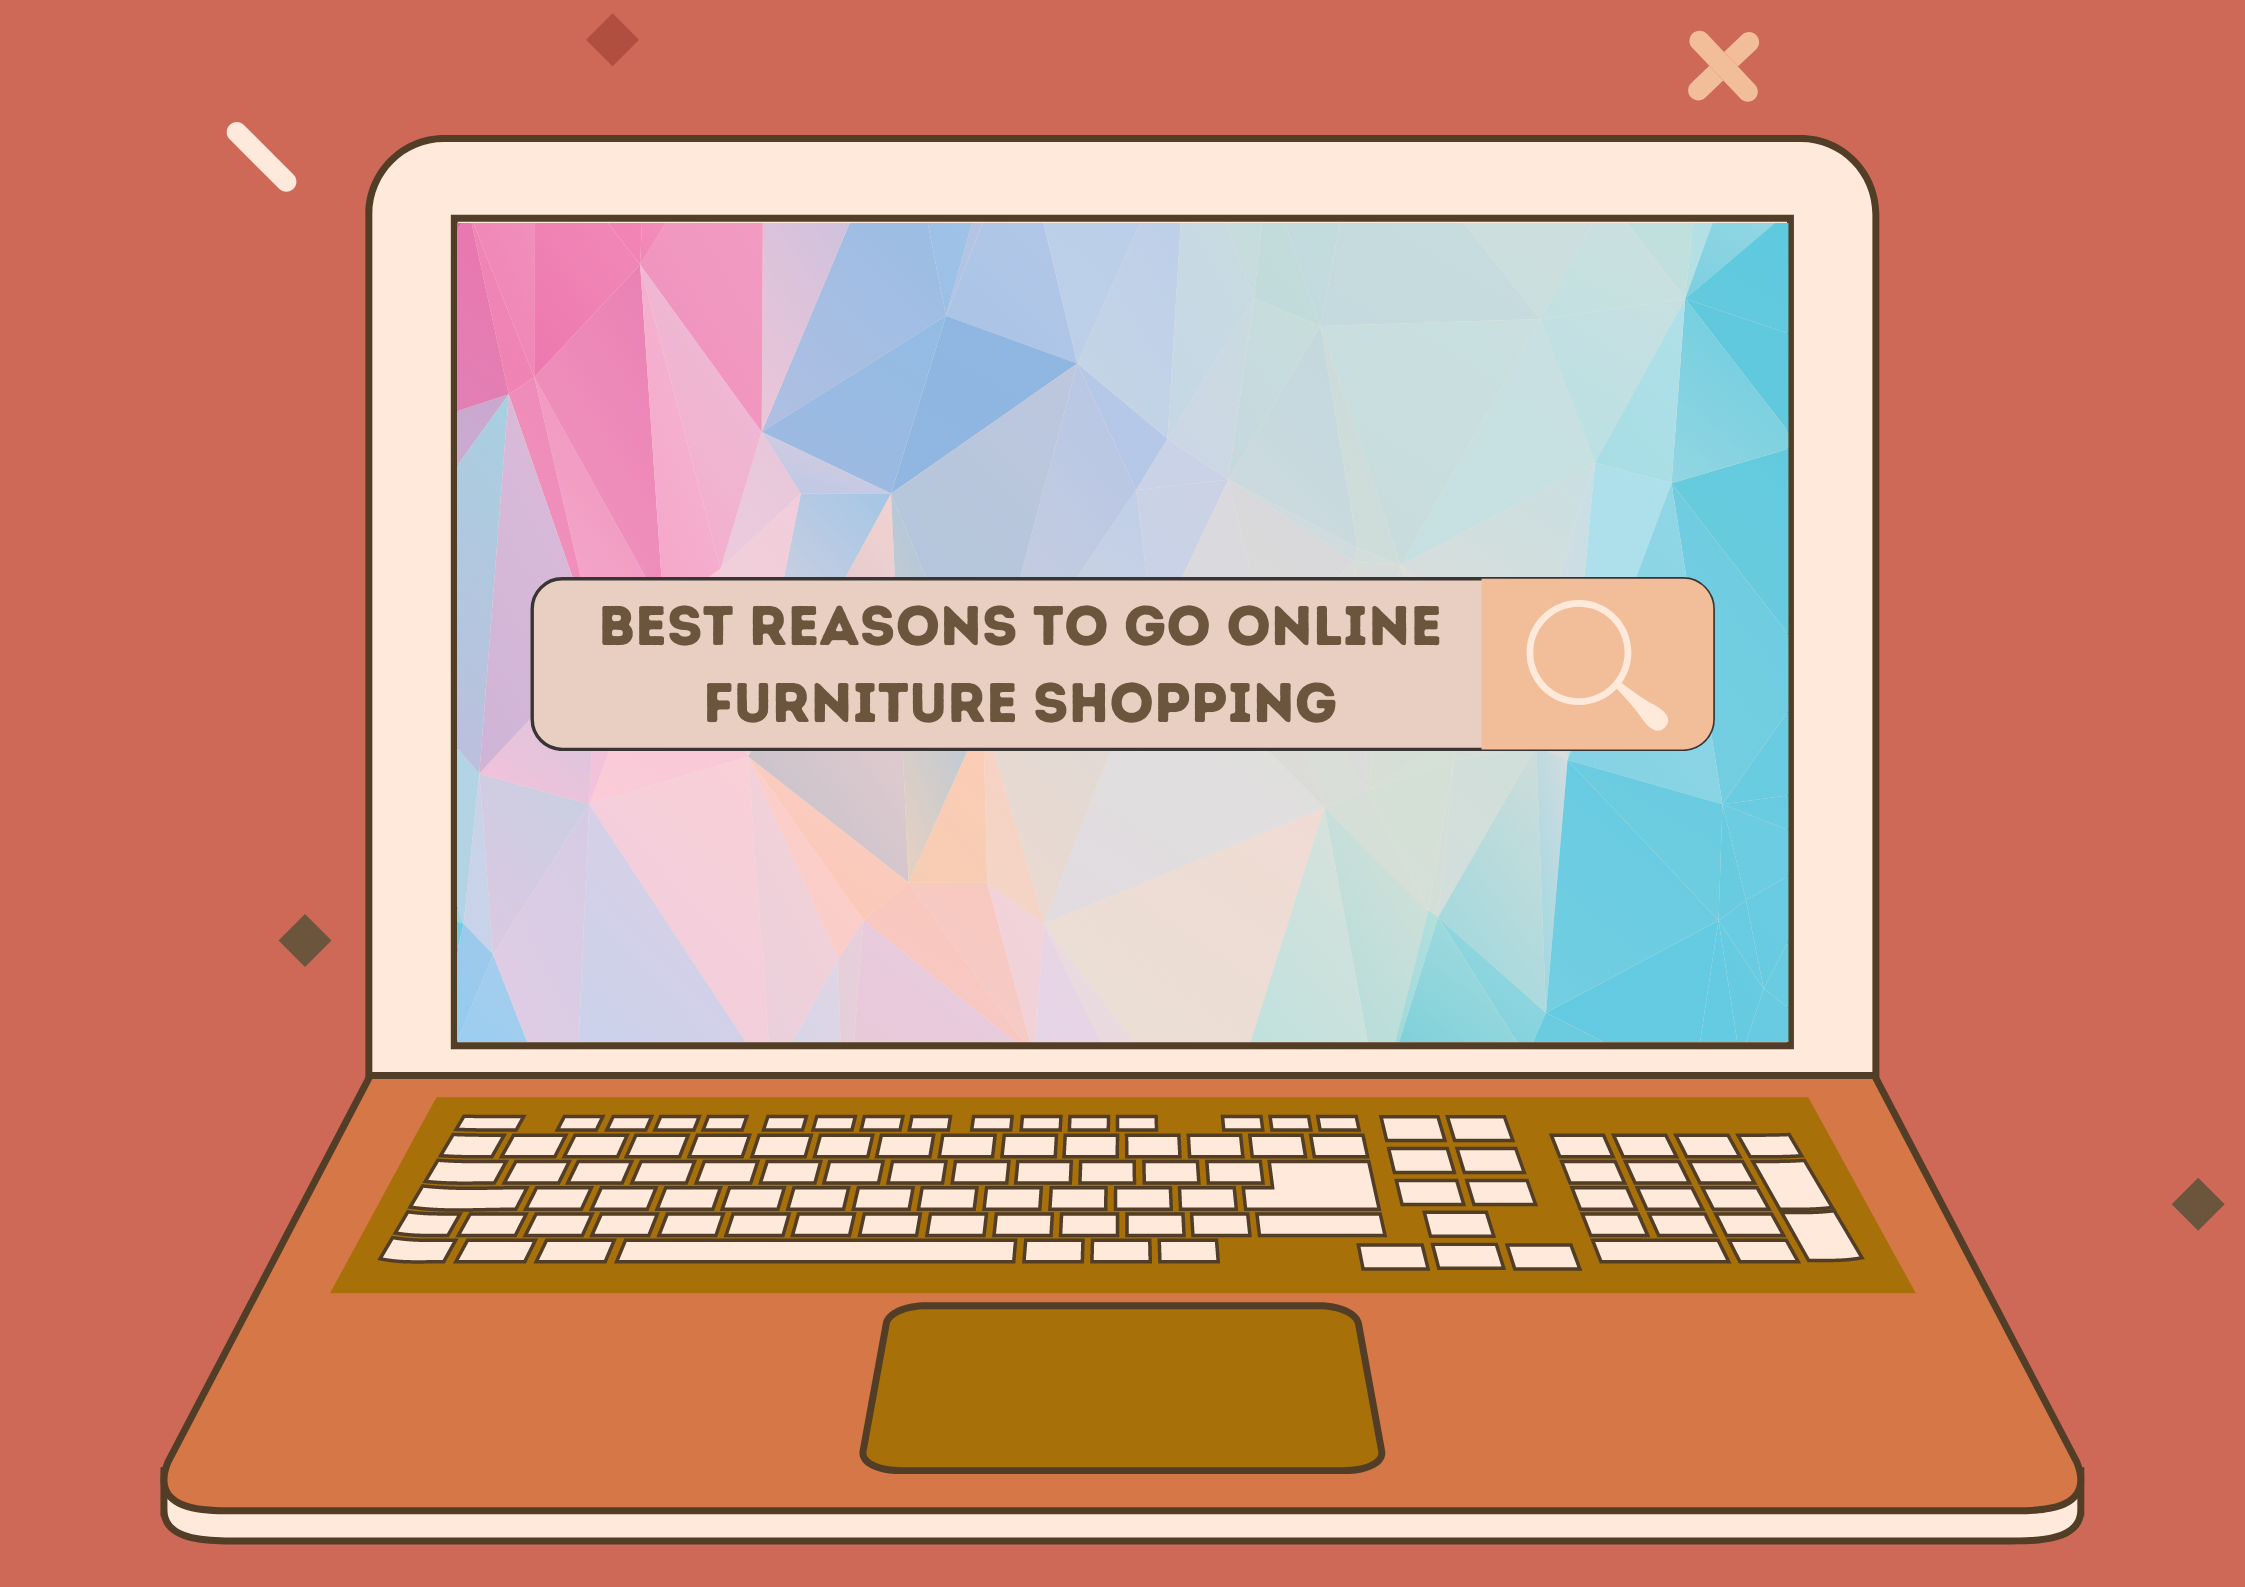 Best-reasons-to-go-online-furniture-shopping